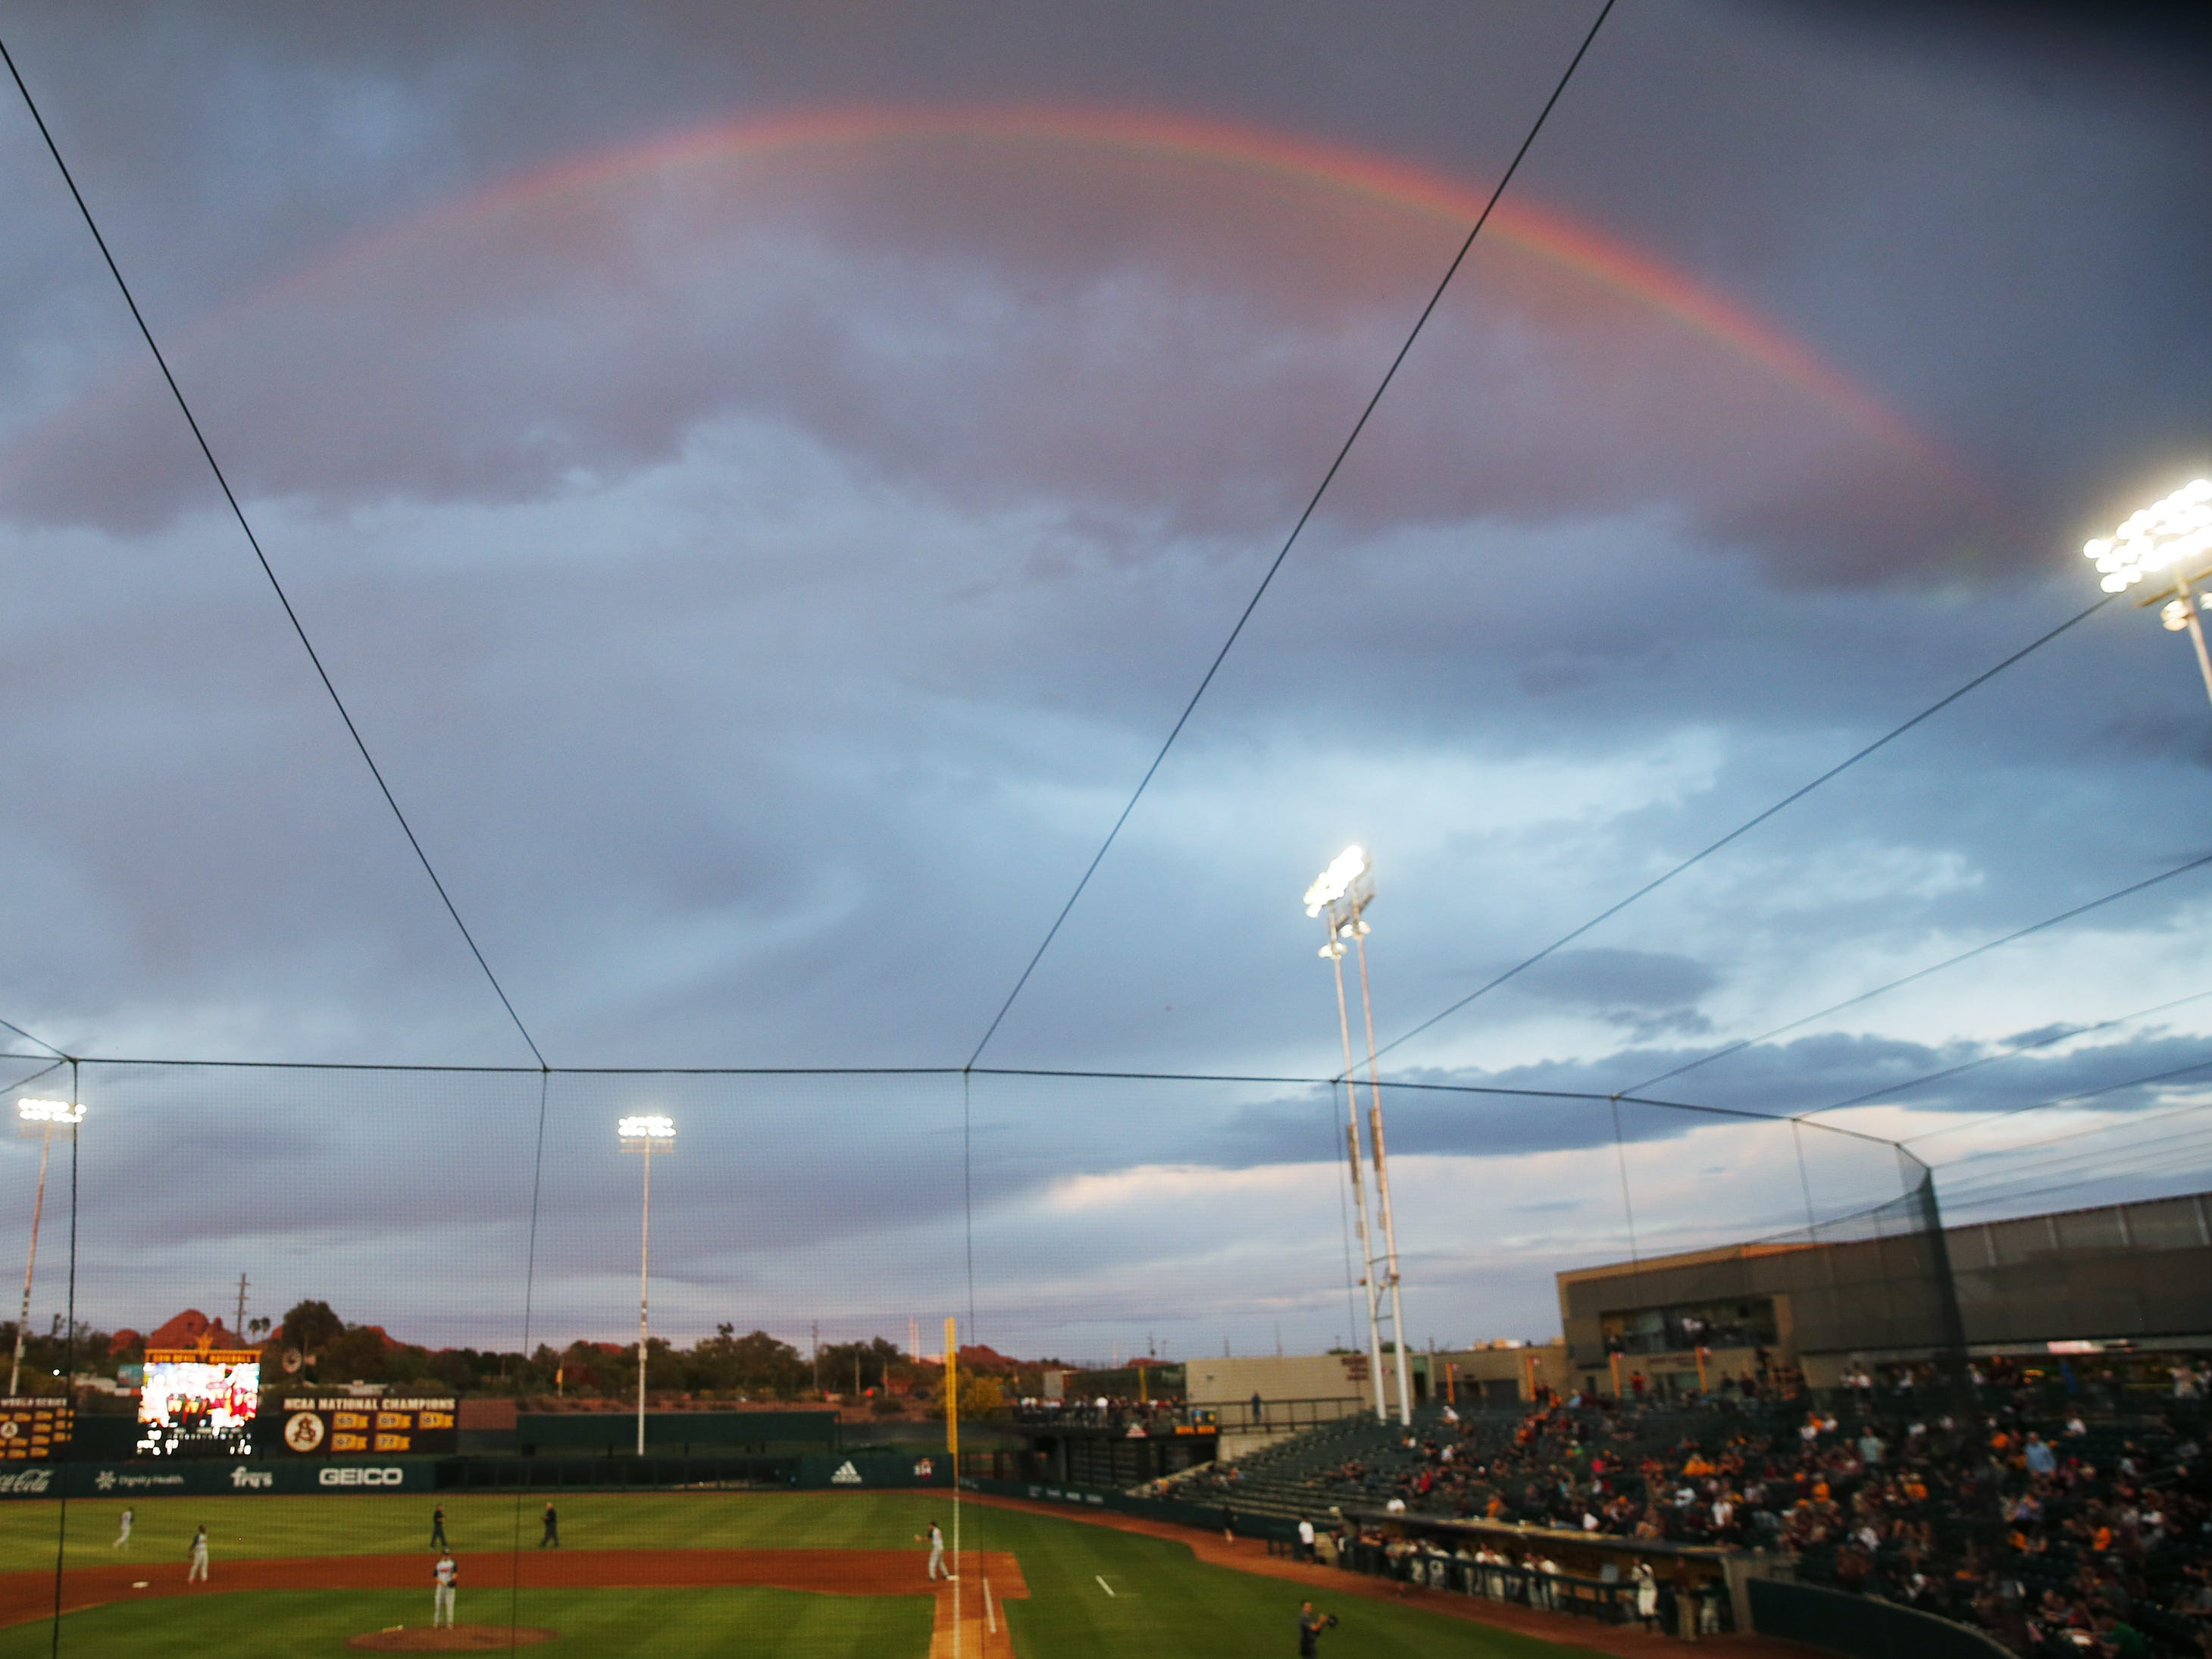 A rainbow forms over Phoenix Municipal Stadium during NCAA baseball game between ASU and UNLV in Phoenix April 23, 2019.